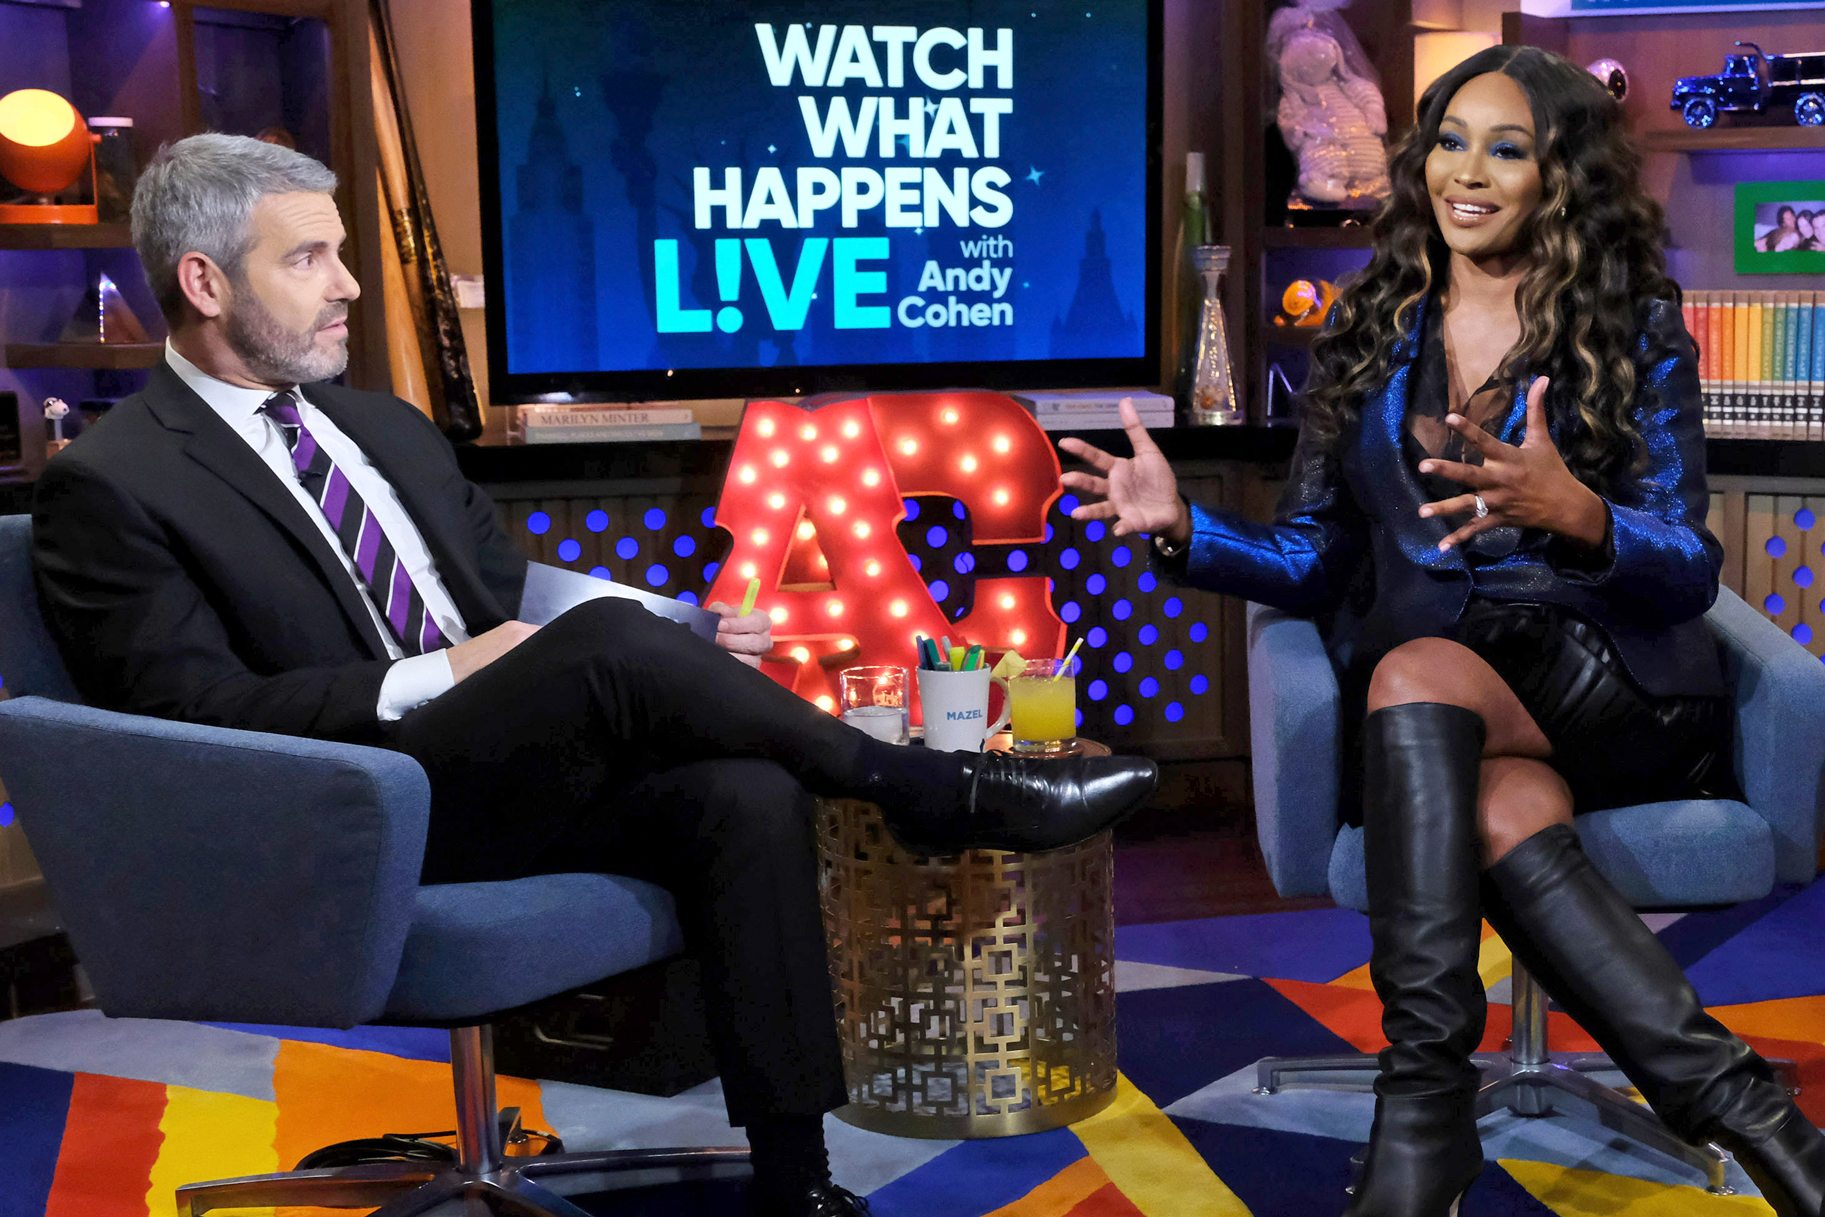 """Andy Cohen on Cynthia Bailey's Latest Friendship Drama: """"I Don't Know If This Is Gonna Work out So Well for You"""""""